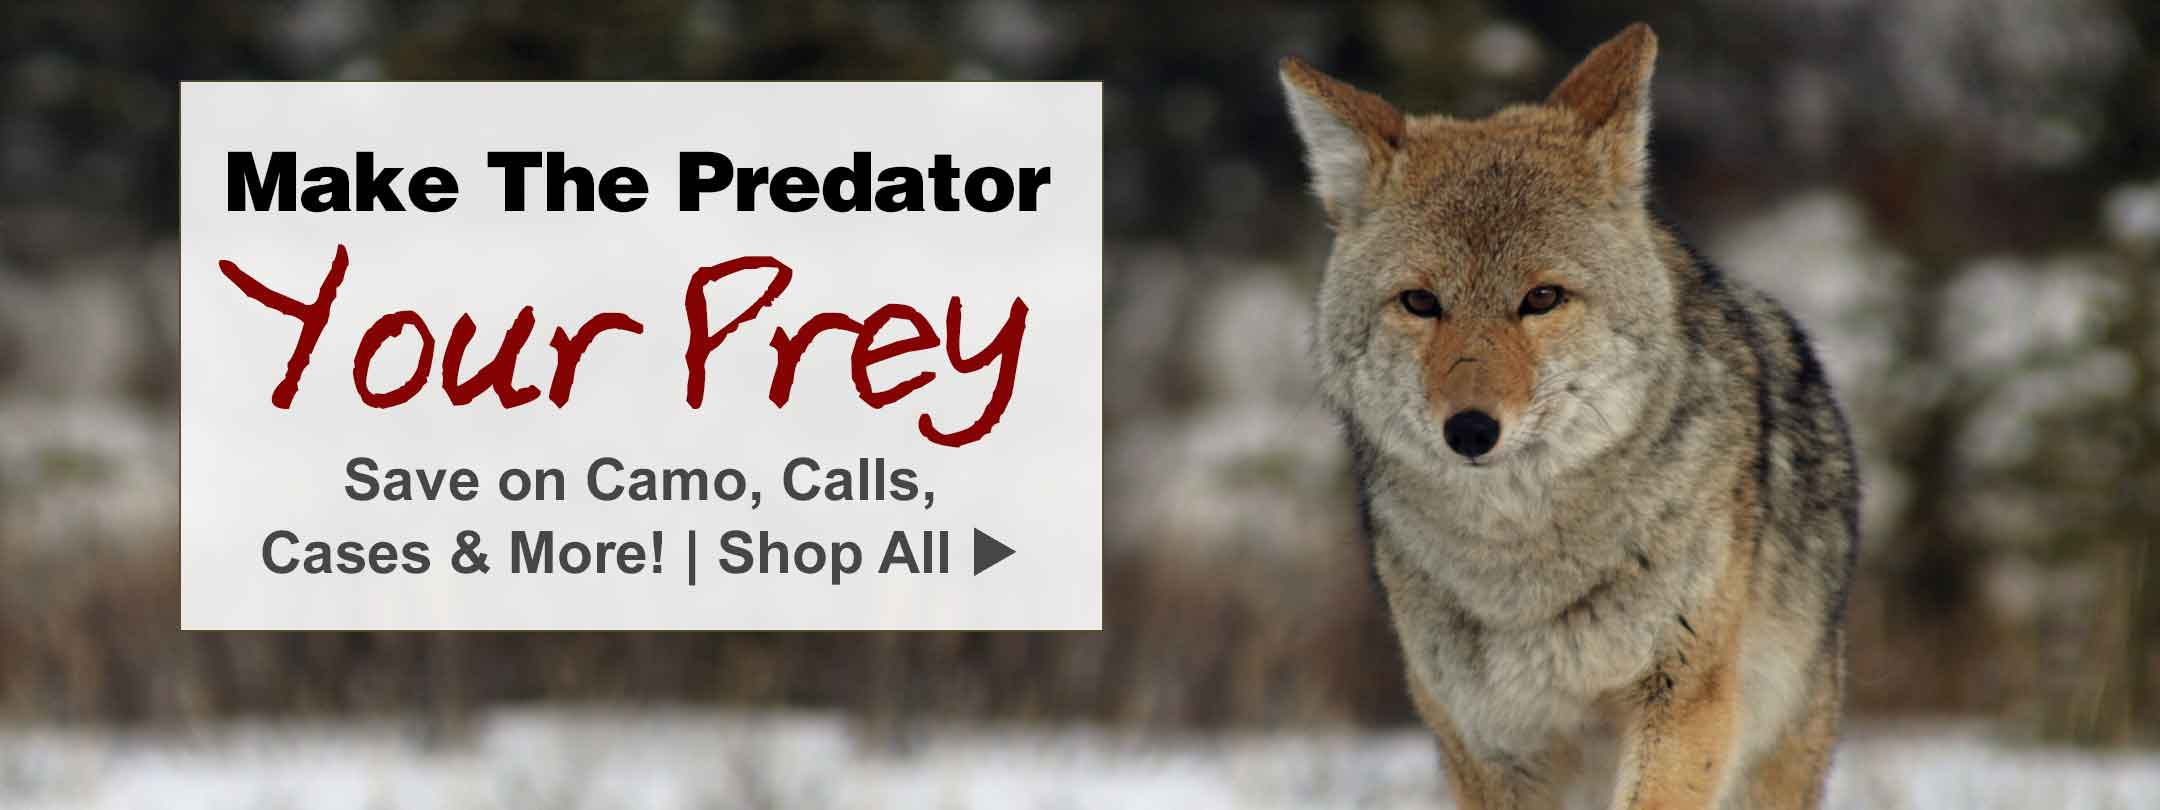 Predator Hunting Sale! Save on Camo, Calls, Cases & More!